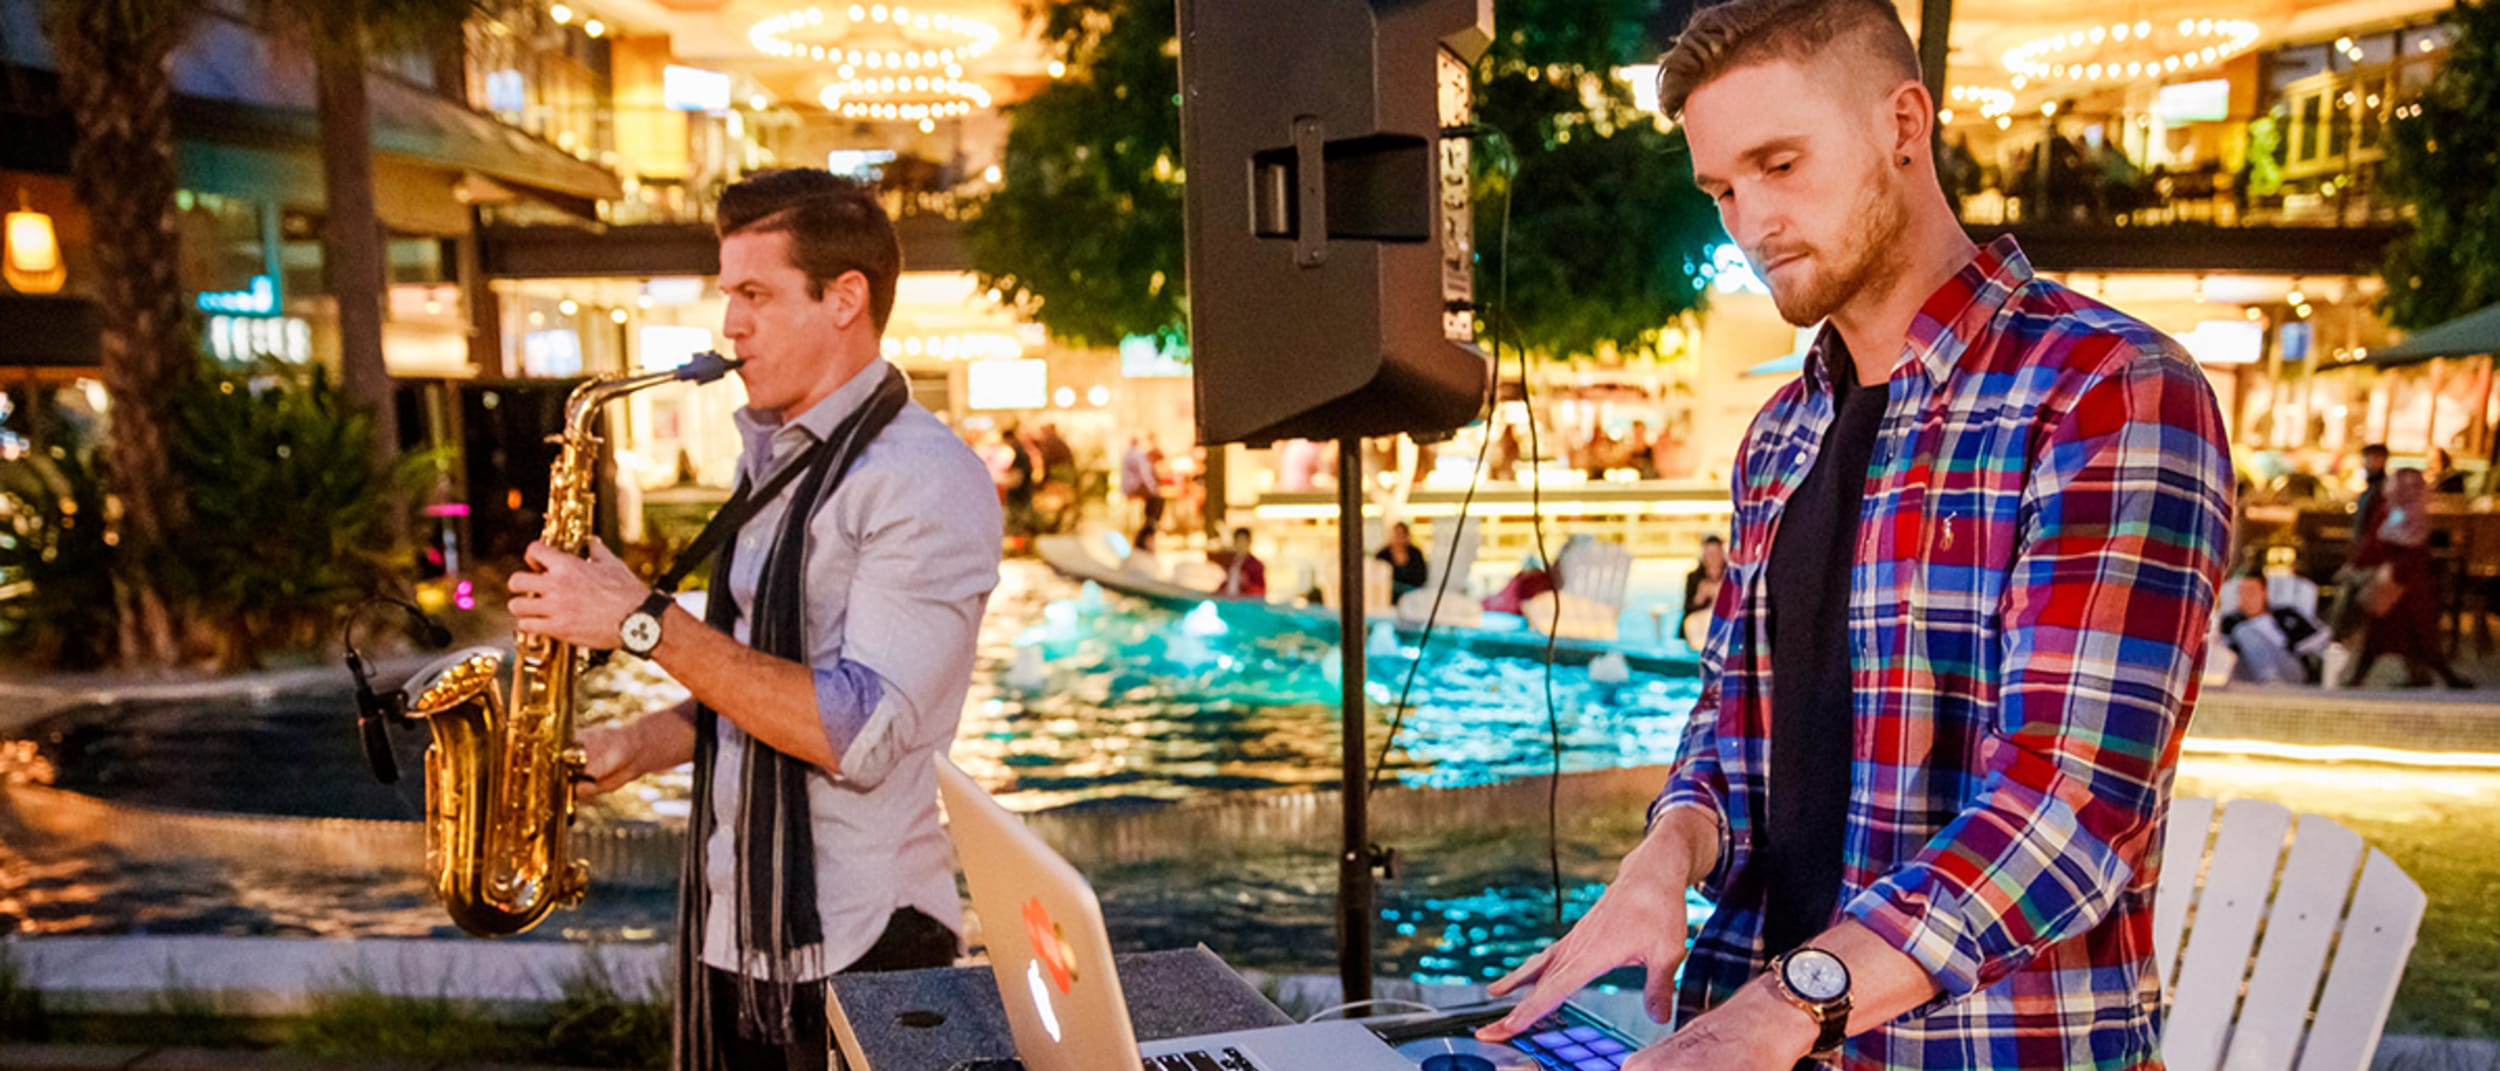 Weekly Town Square Live Entertainment